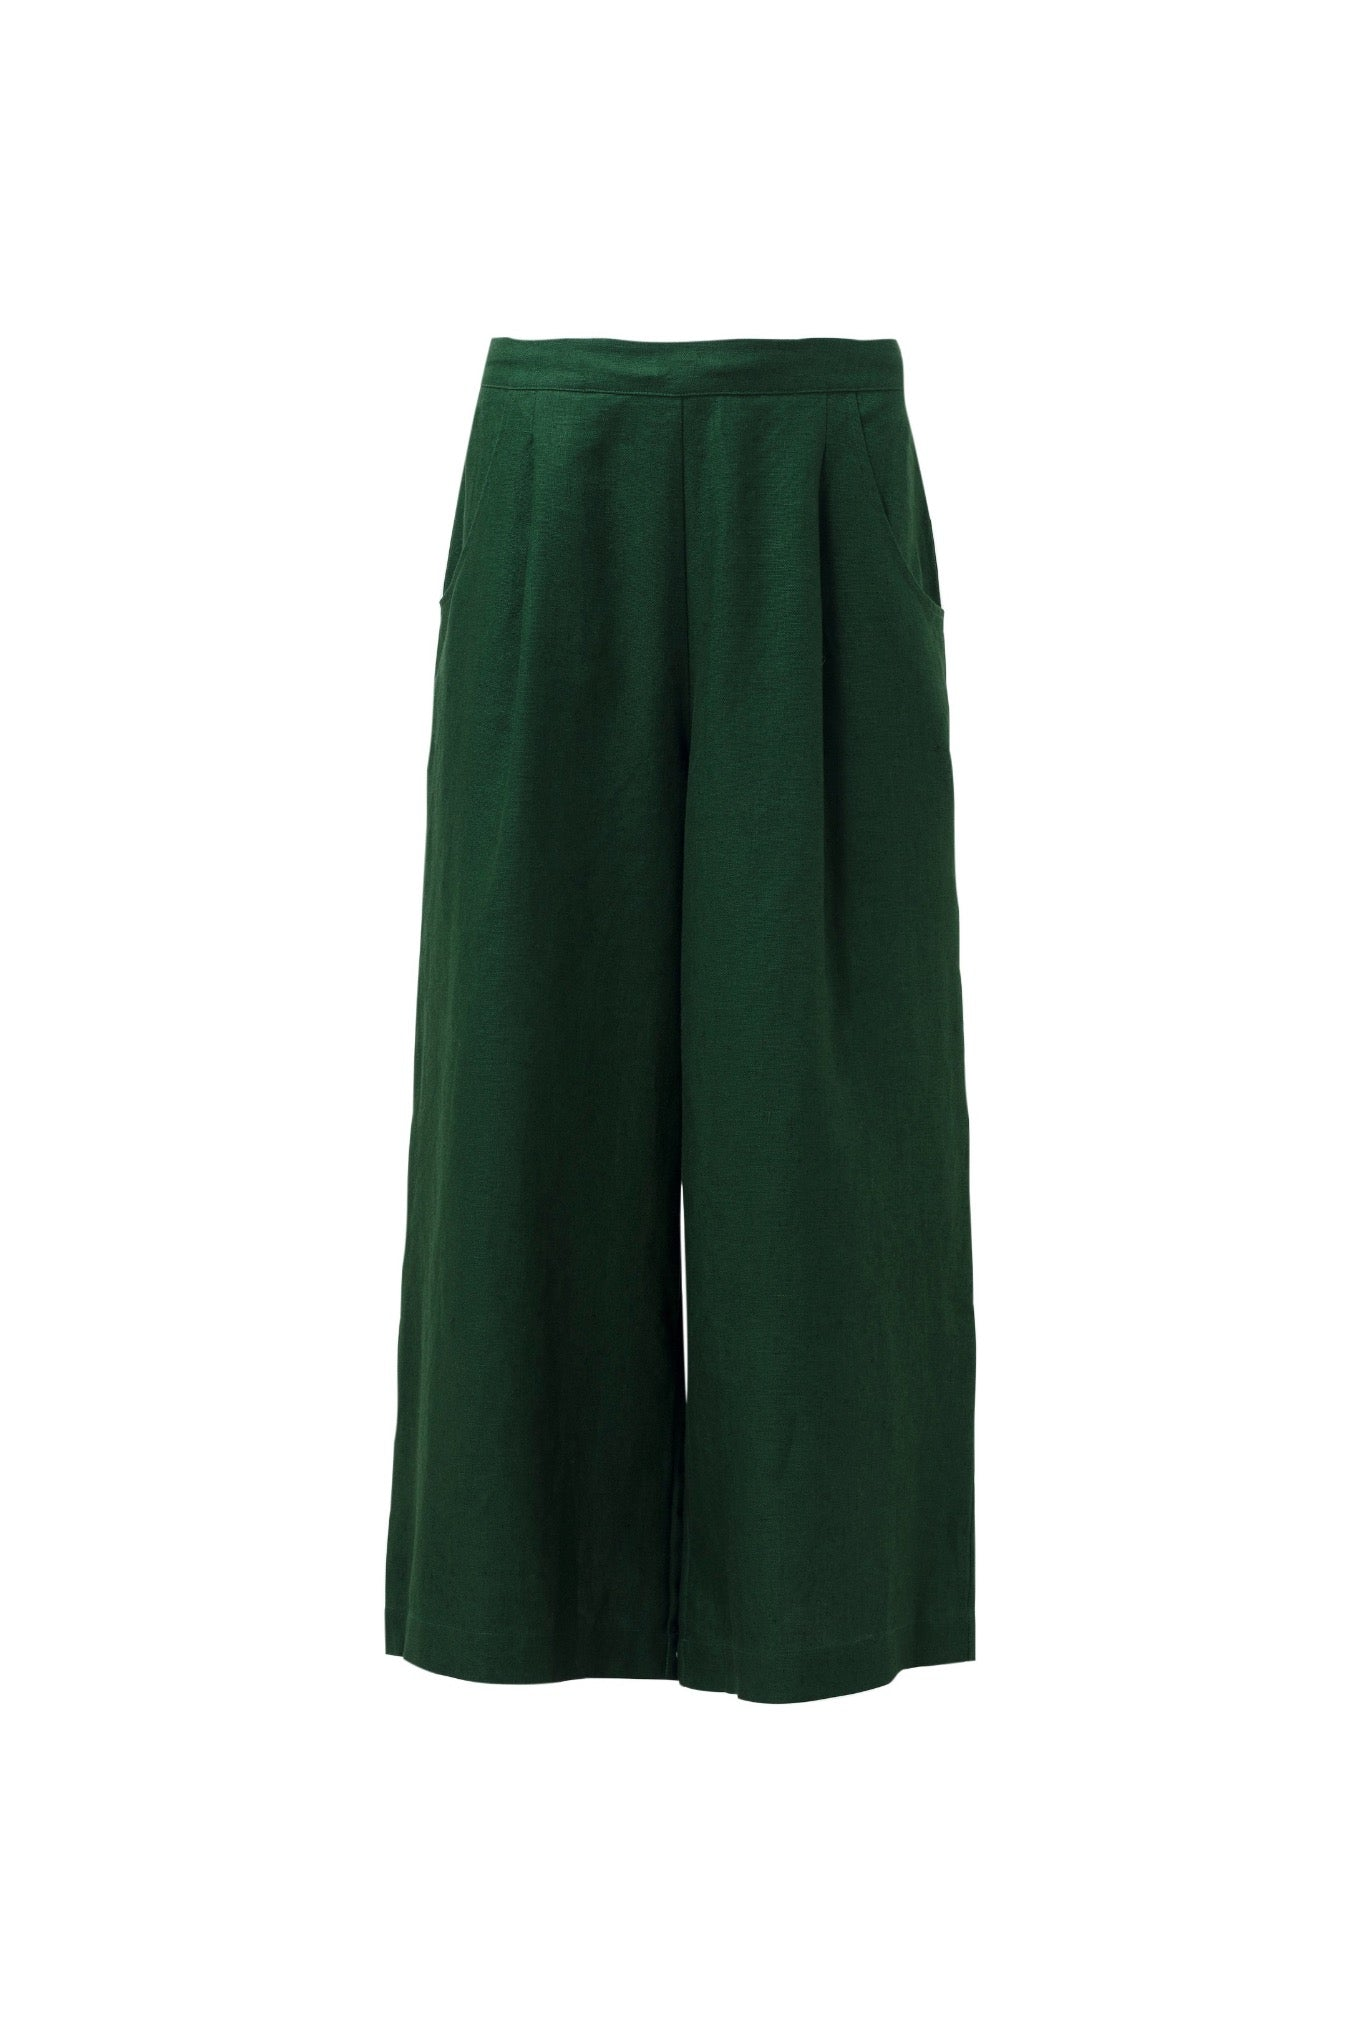 Elk Ilona pant in pine, linen wide leg pant with front pleats, elastic at back and side pockets.